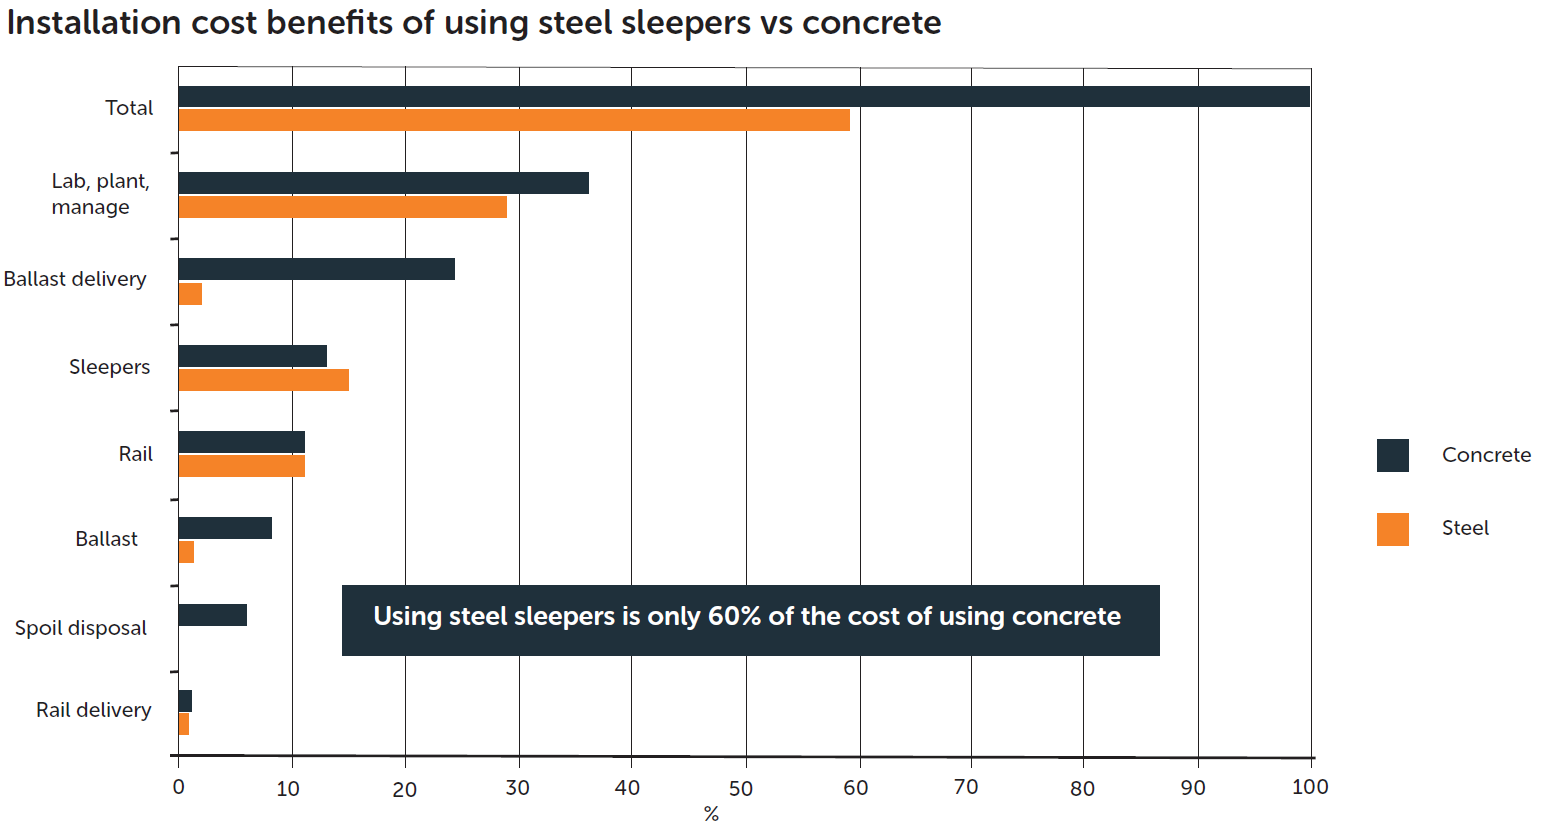 Cost savings achieved for remediation project using steel sleepers compared to concrete ties